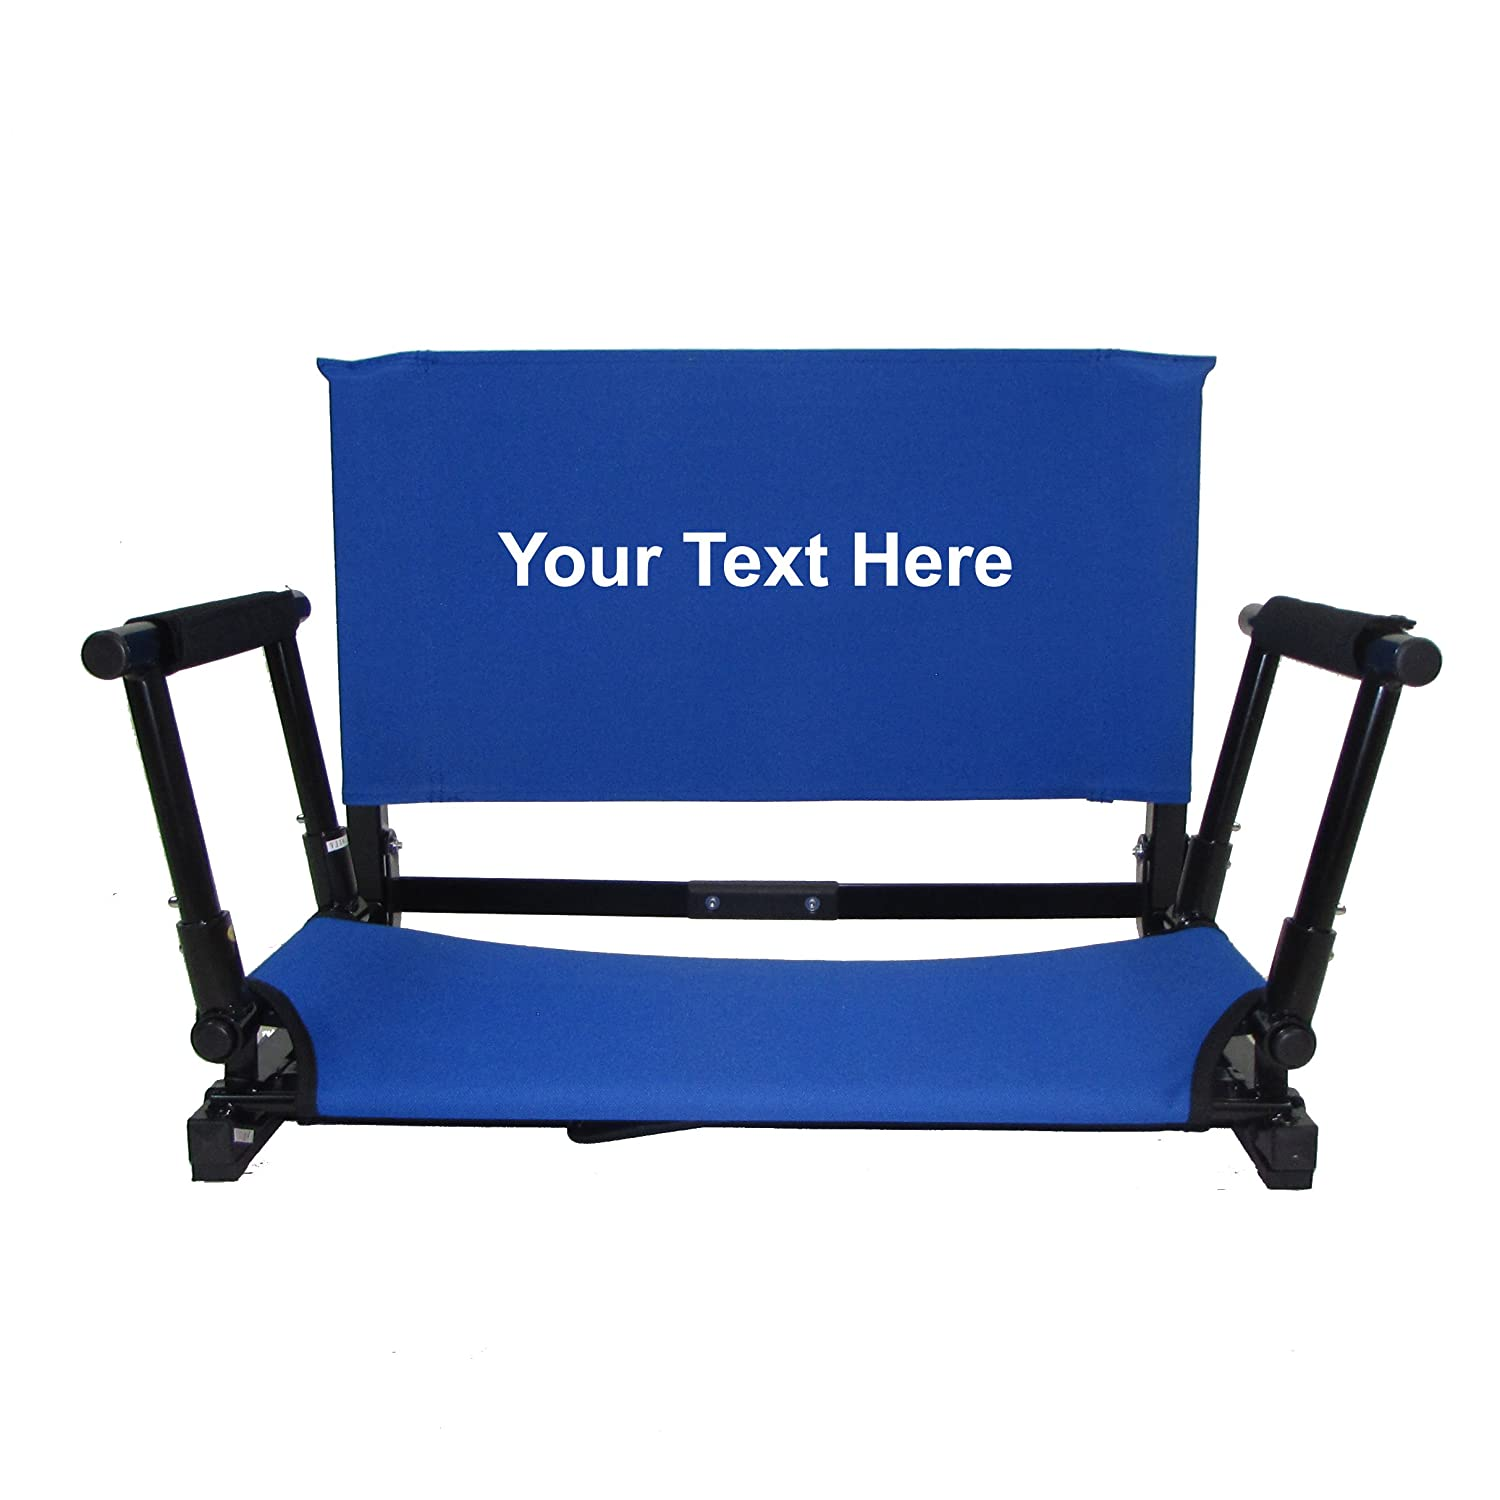 Personalized刺繍新しいデラックスWide Stadium椅子Gamechanger Bleacher Seat with Optional Arms B0765CBDG6  Royal Blue with Arms